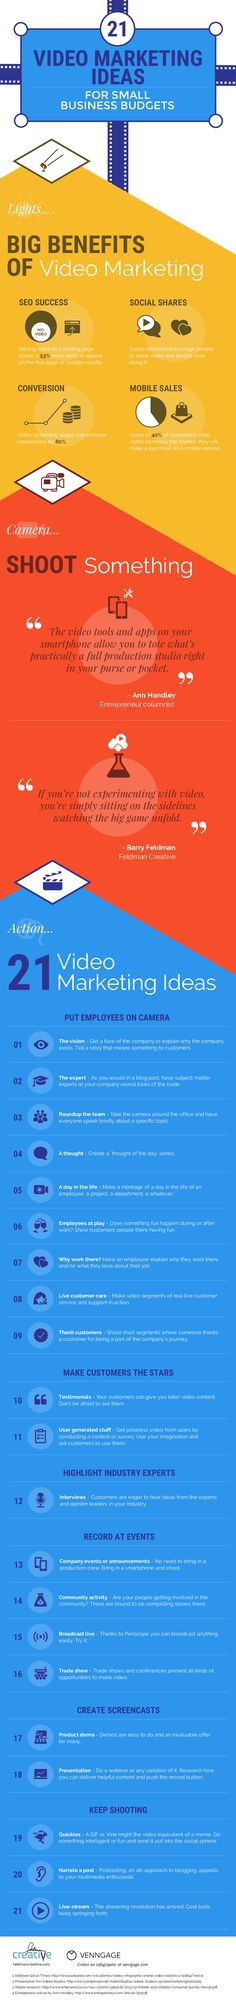 21 VÍDEO MARKETING IDEAS #INFOGRAPHIC #MARKETING